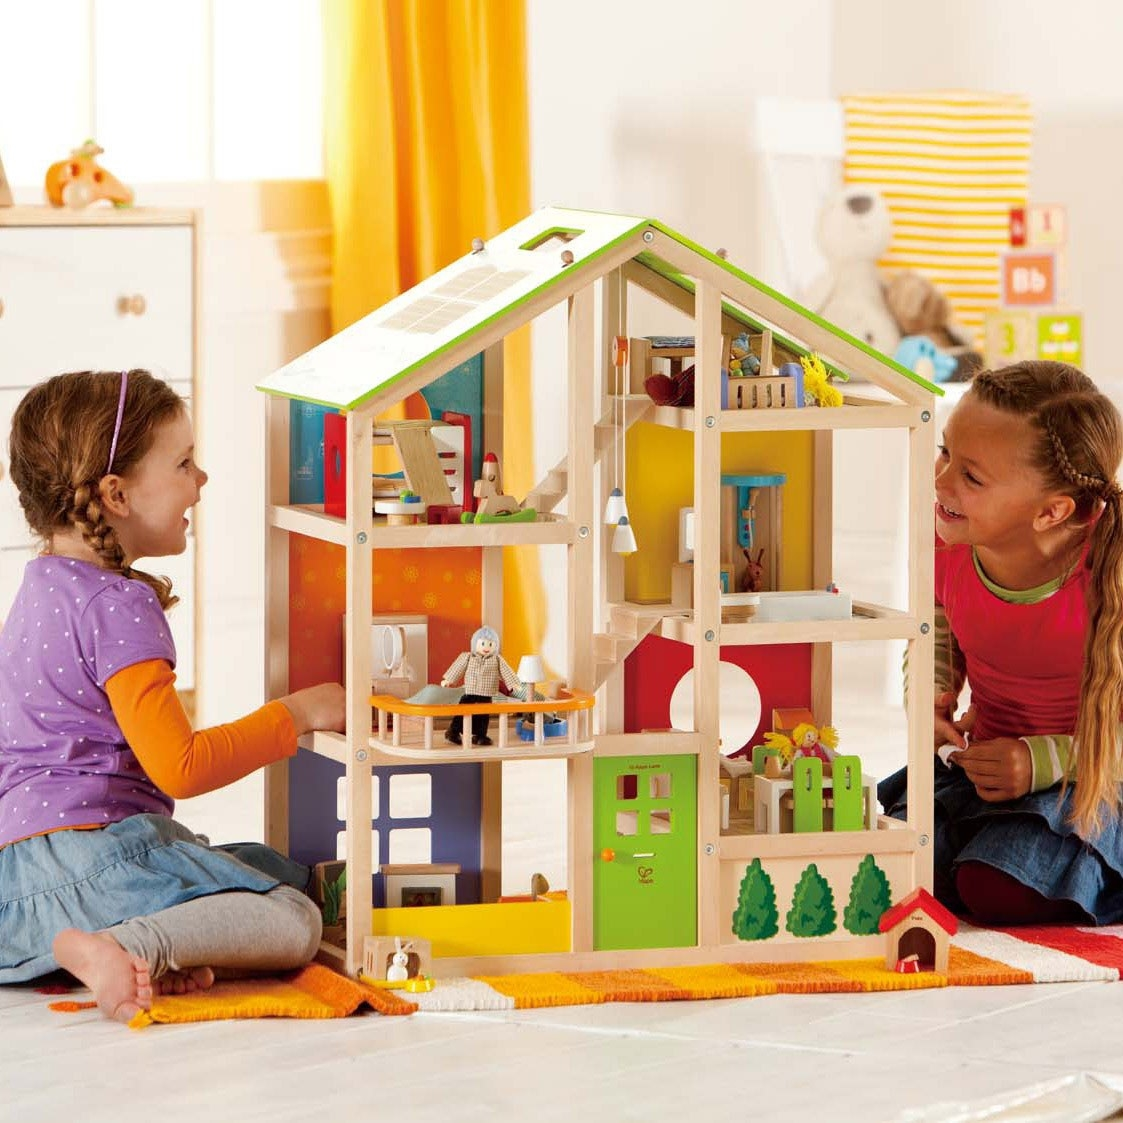 Two children playing with the dollhouse